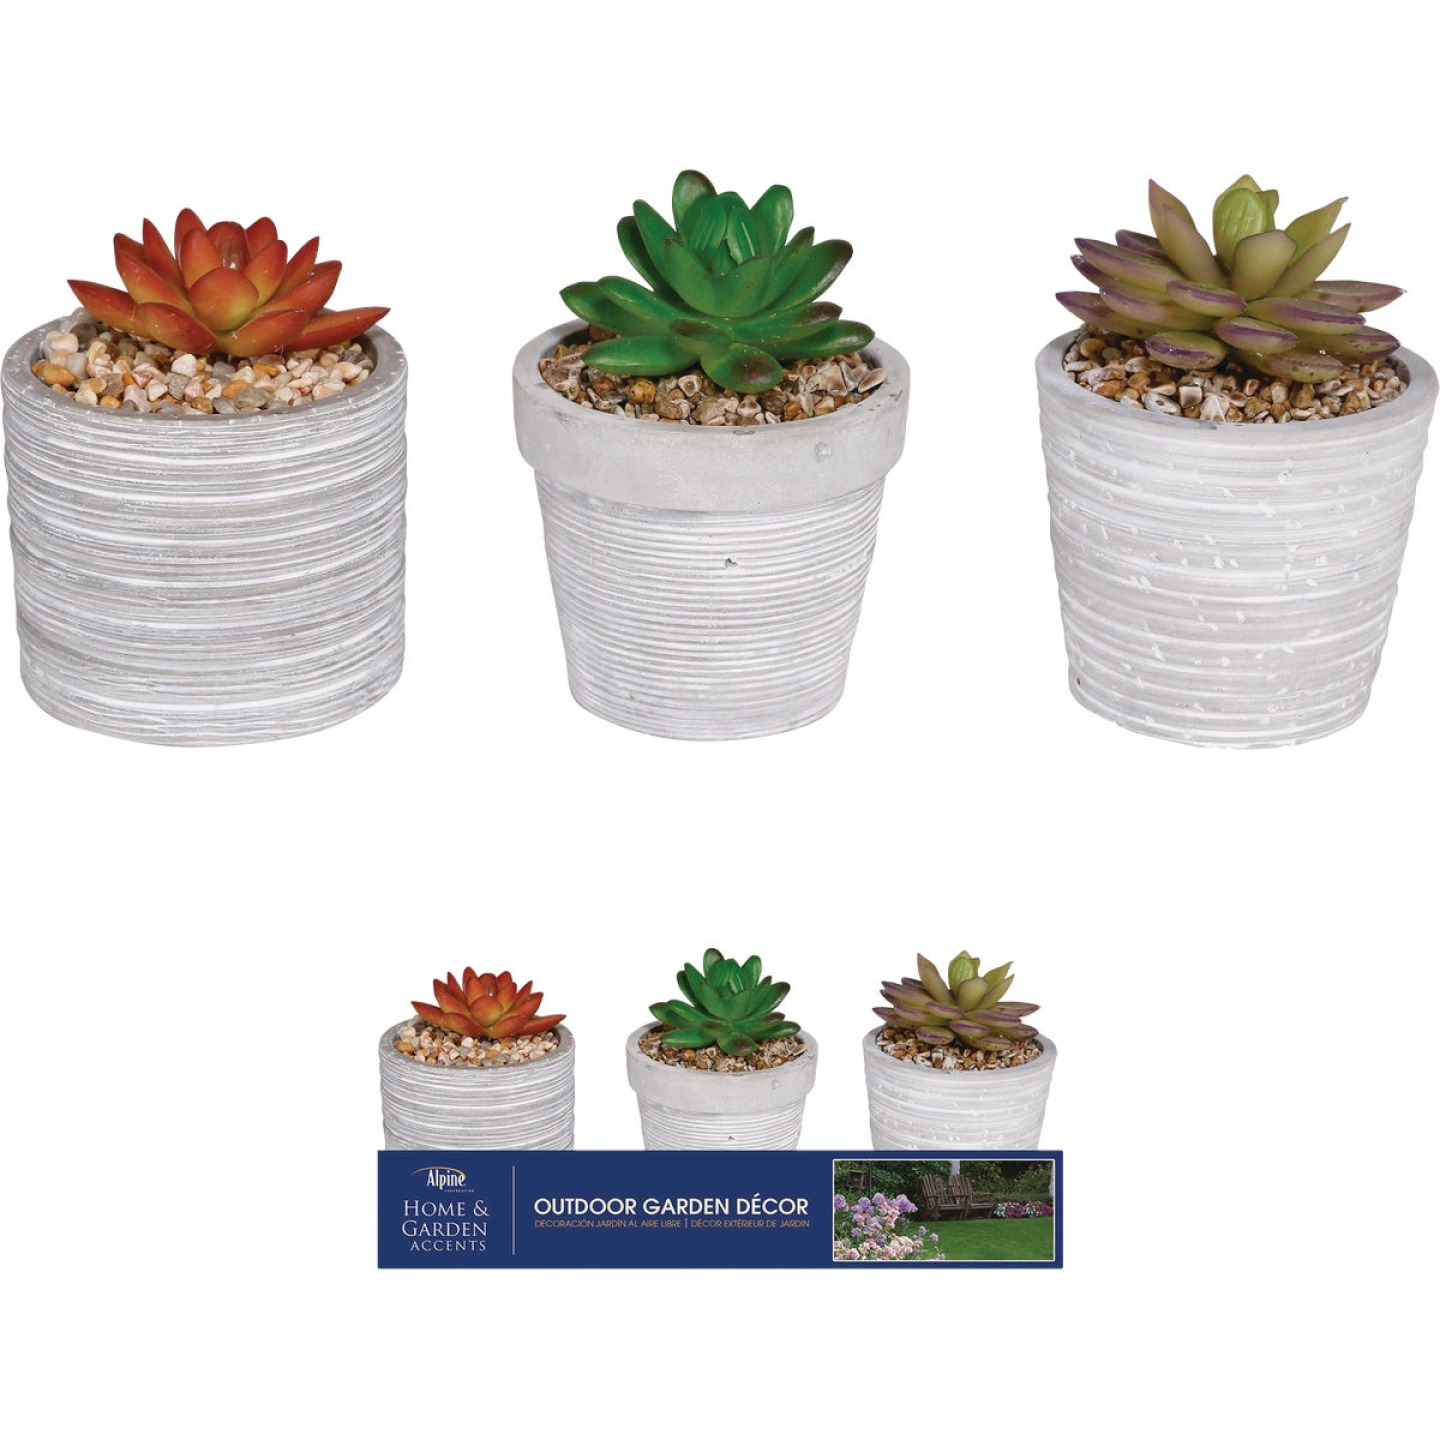 Alpine 5 In. Resin Decorative Succulent Pot Lawn Ornament Image 1